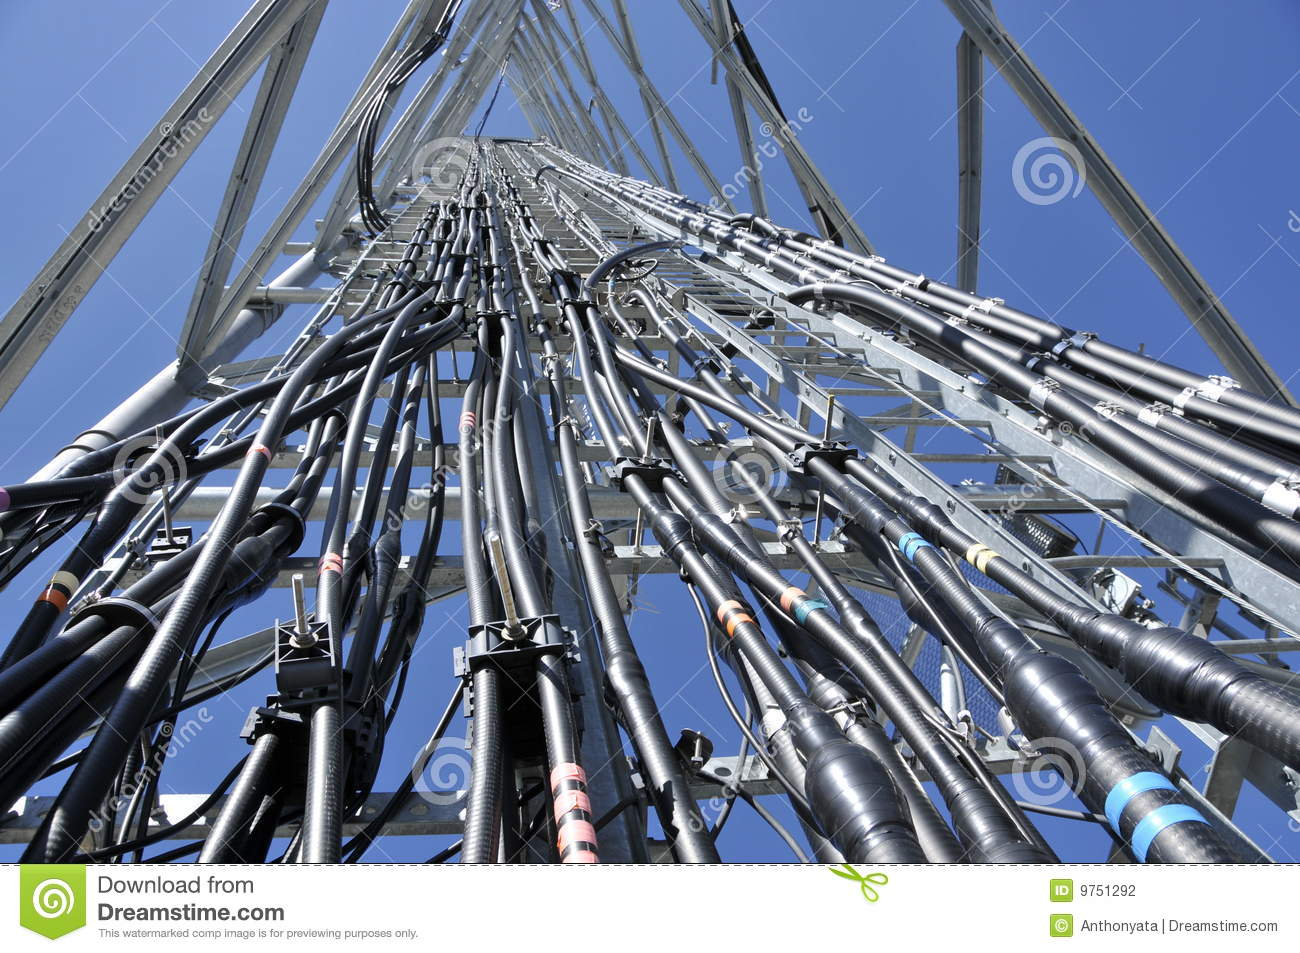 Telecommunication Cable Tray Stock Photography - Image